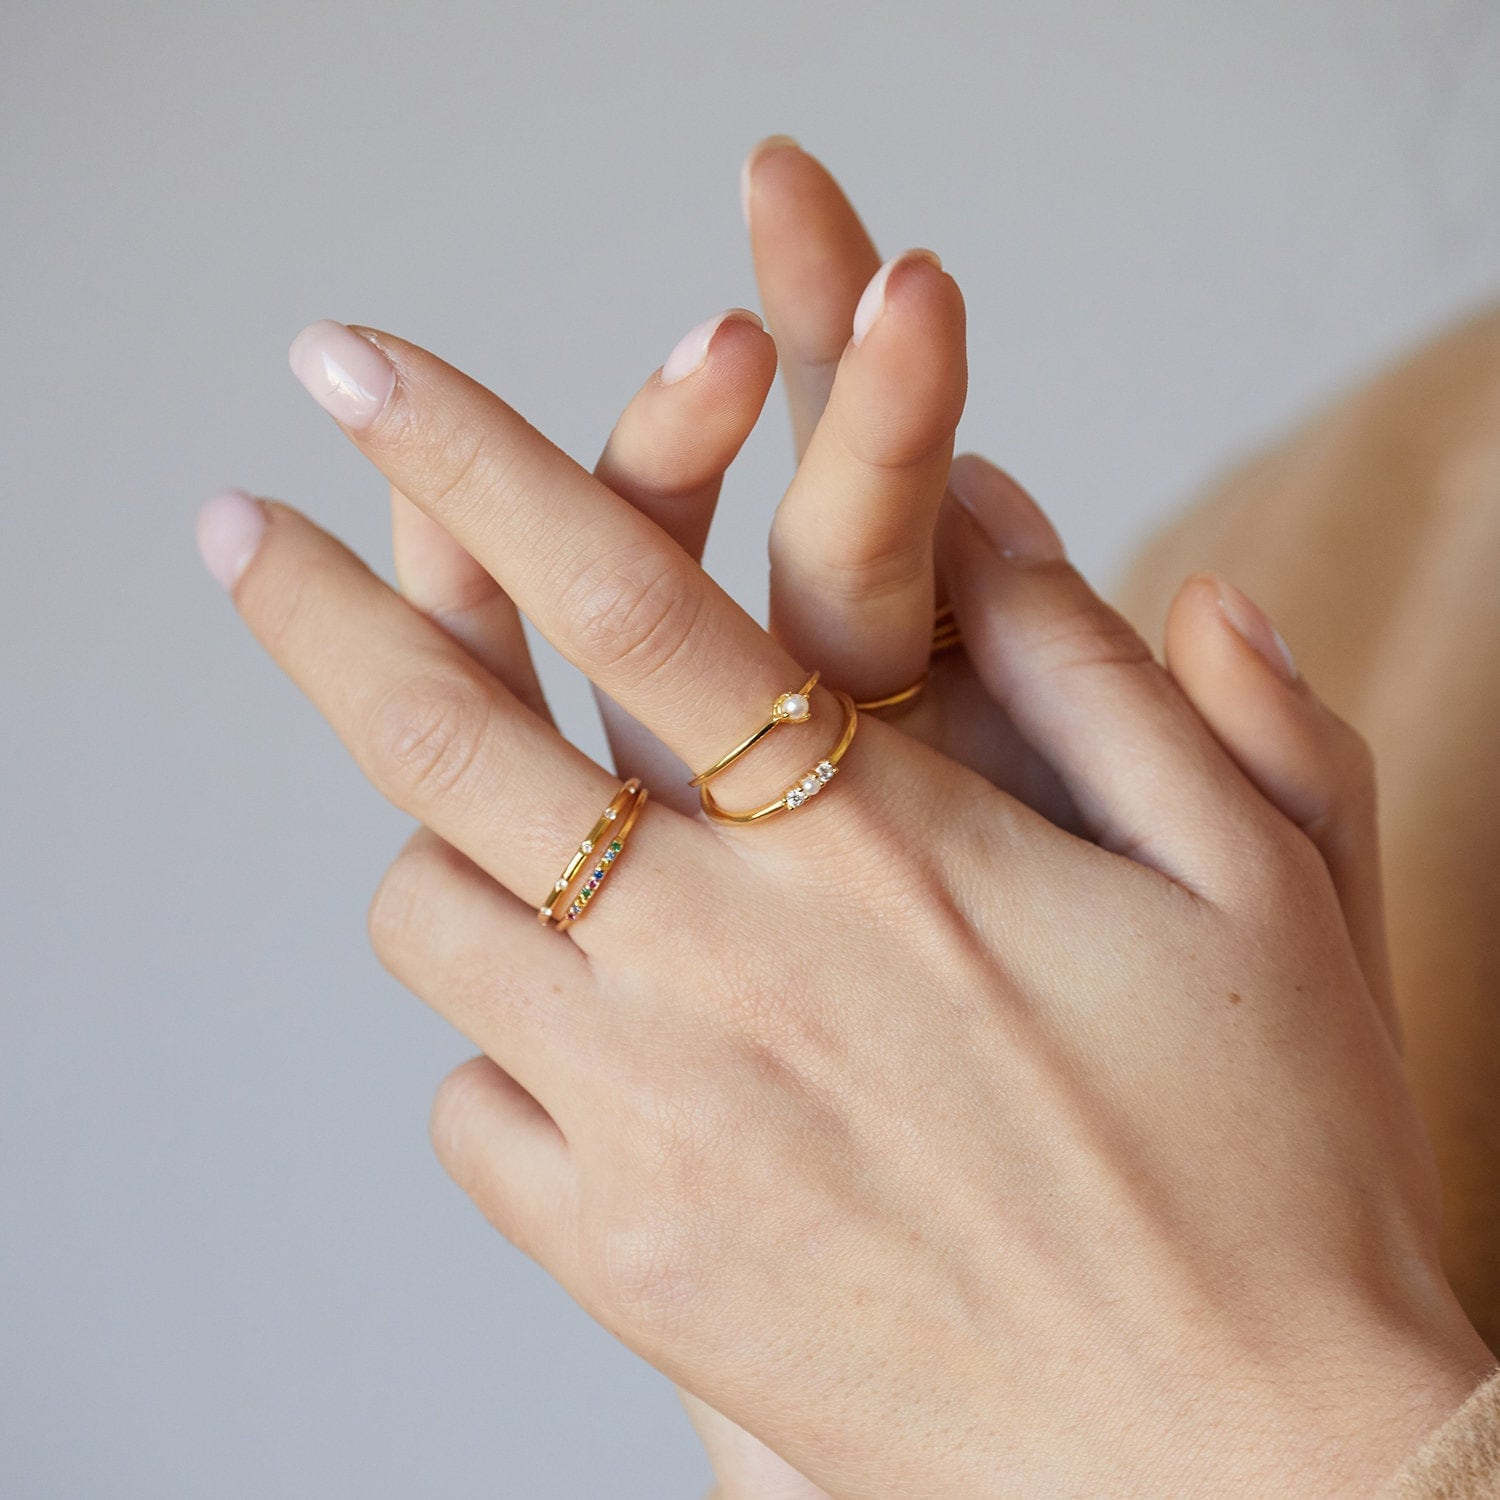 Dainty ring, rainbow ring, minimalist ring, stacking ring, multicolor ring, tiny ring, delicate ring, stackable ring, delicate gold ring for sale